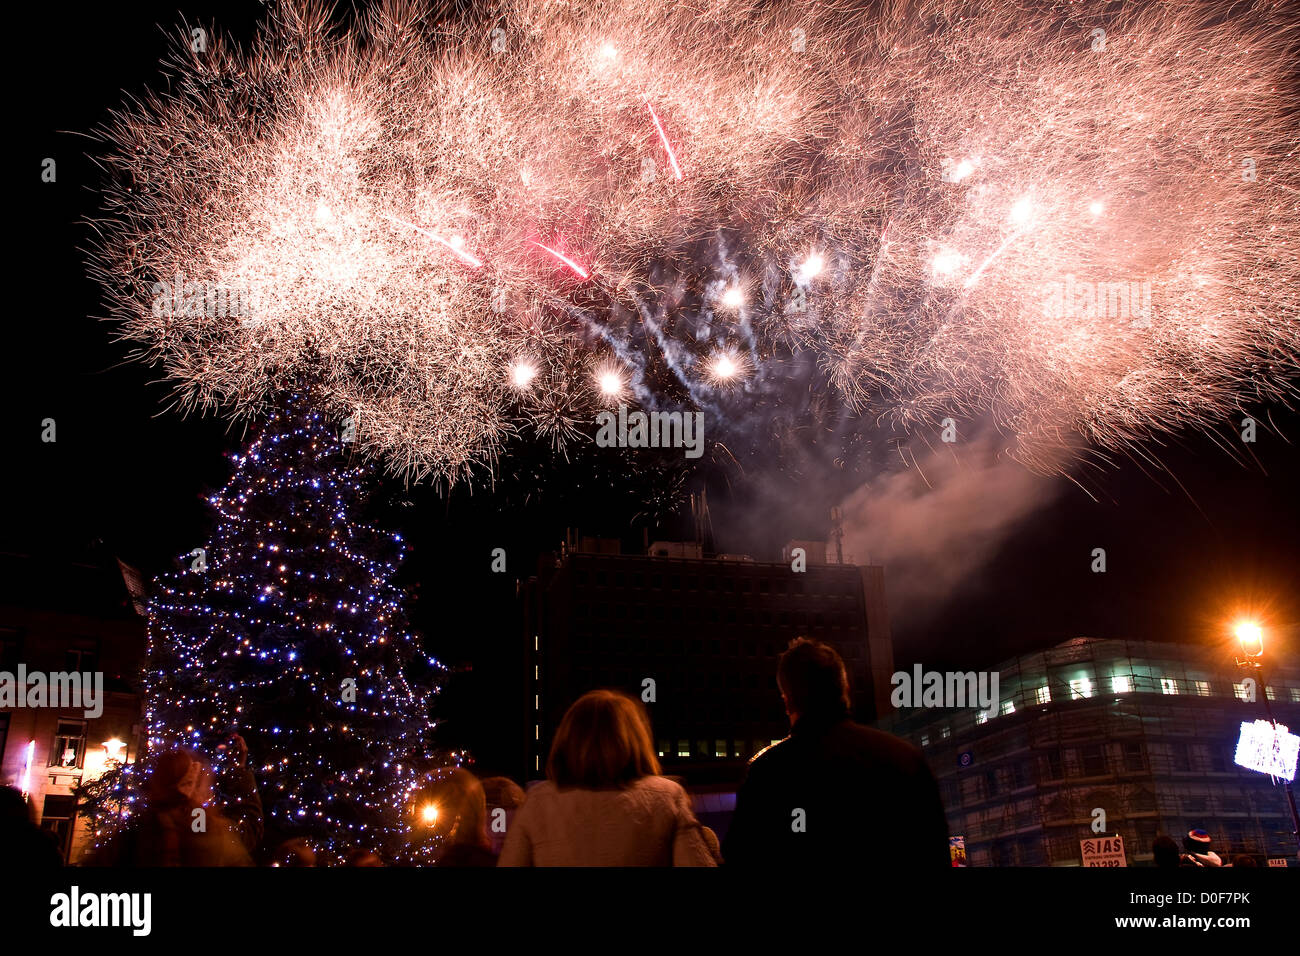 People looking up at the fireworks exploding and filling the night sky during the Christmas Tree Lights switch on - Stock Image